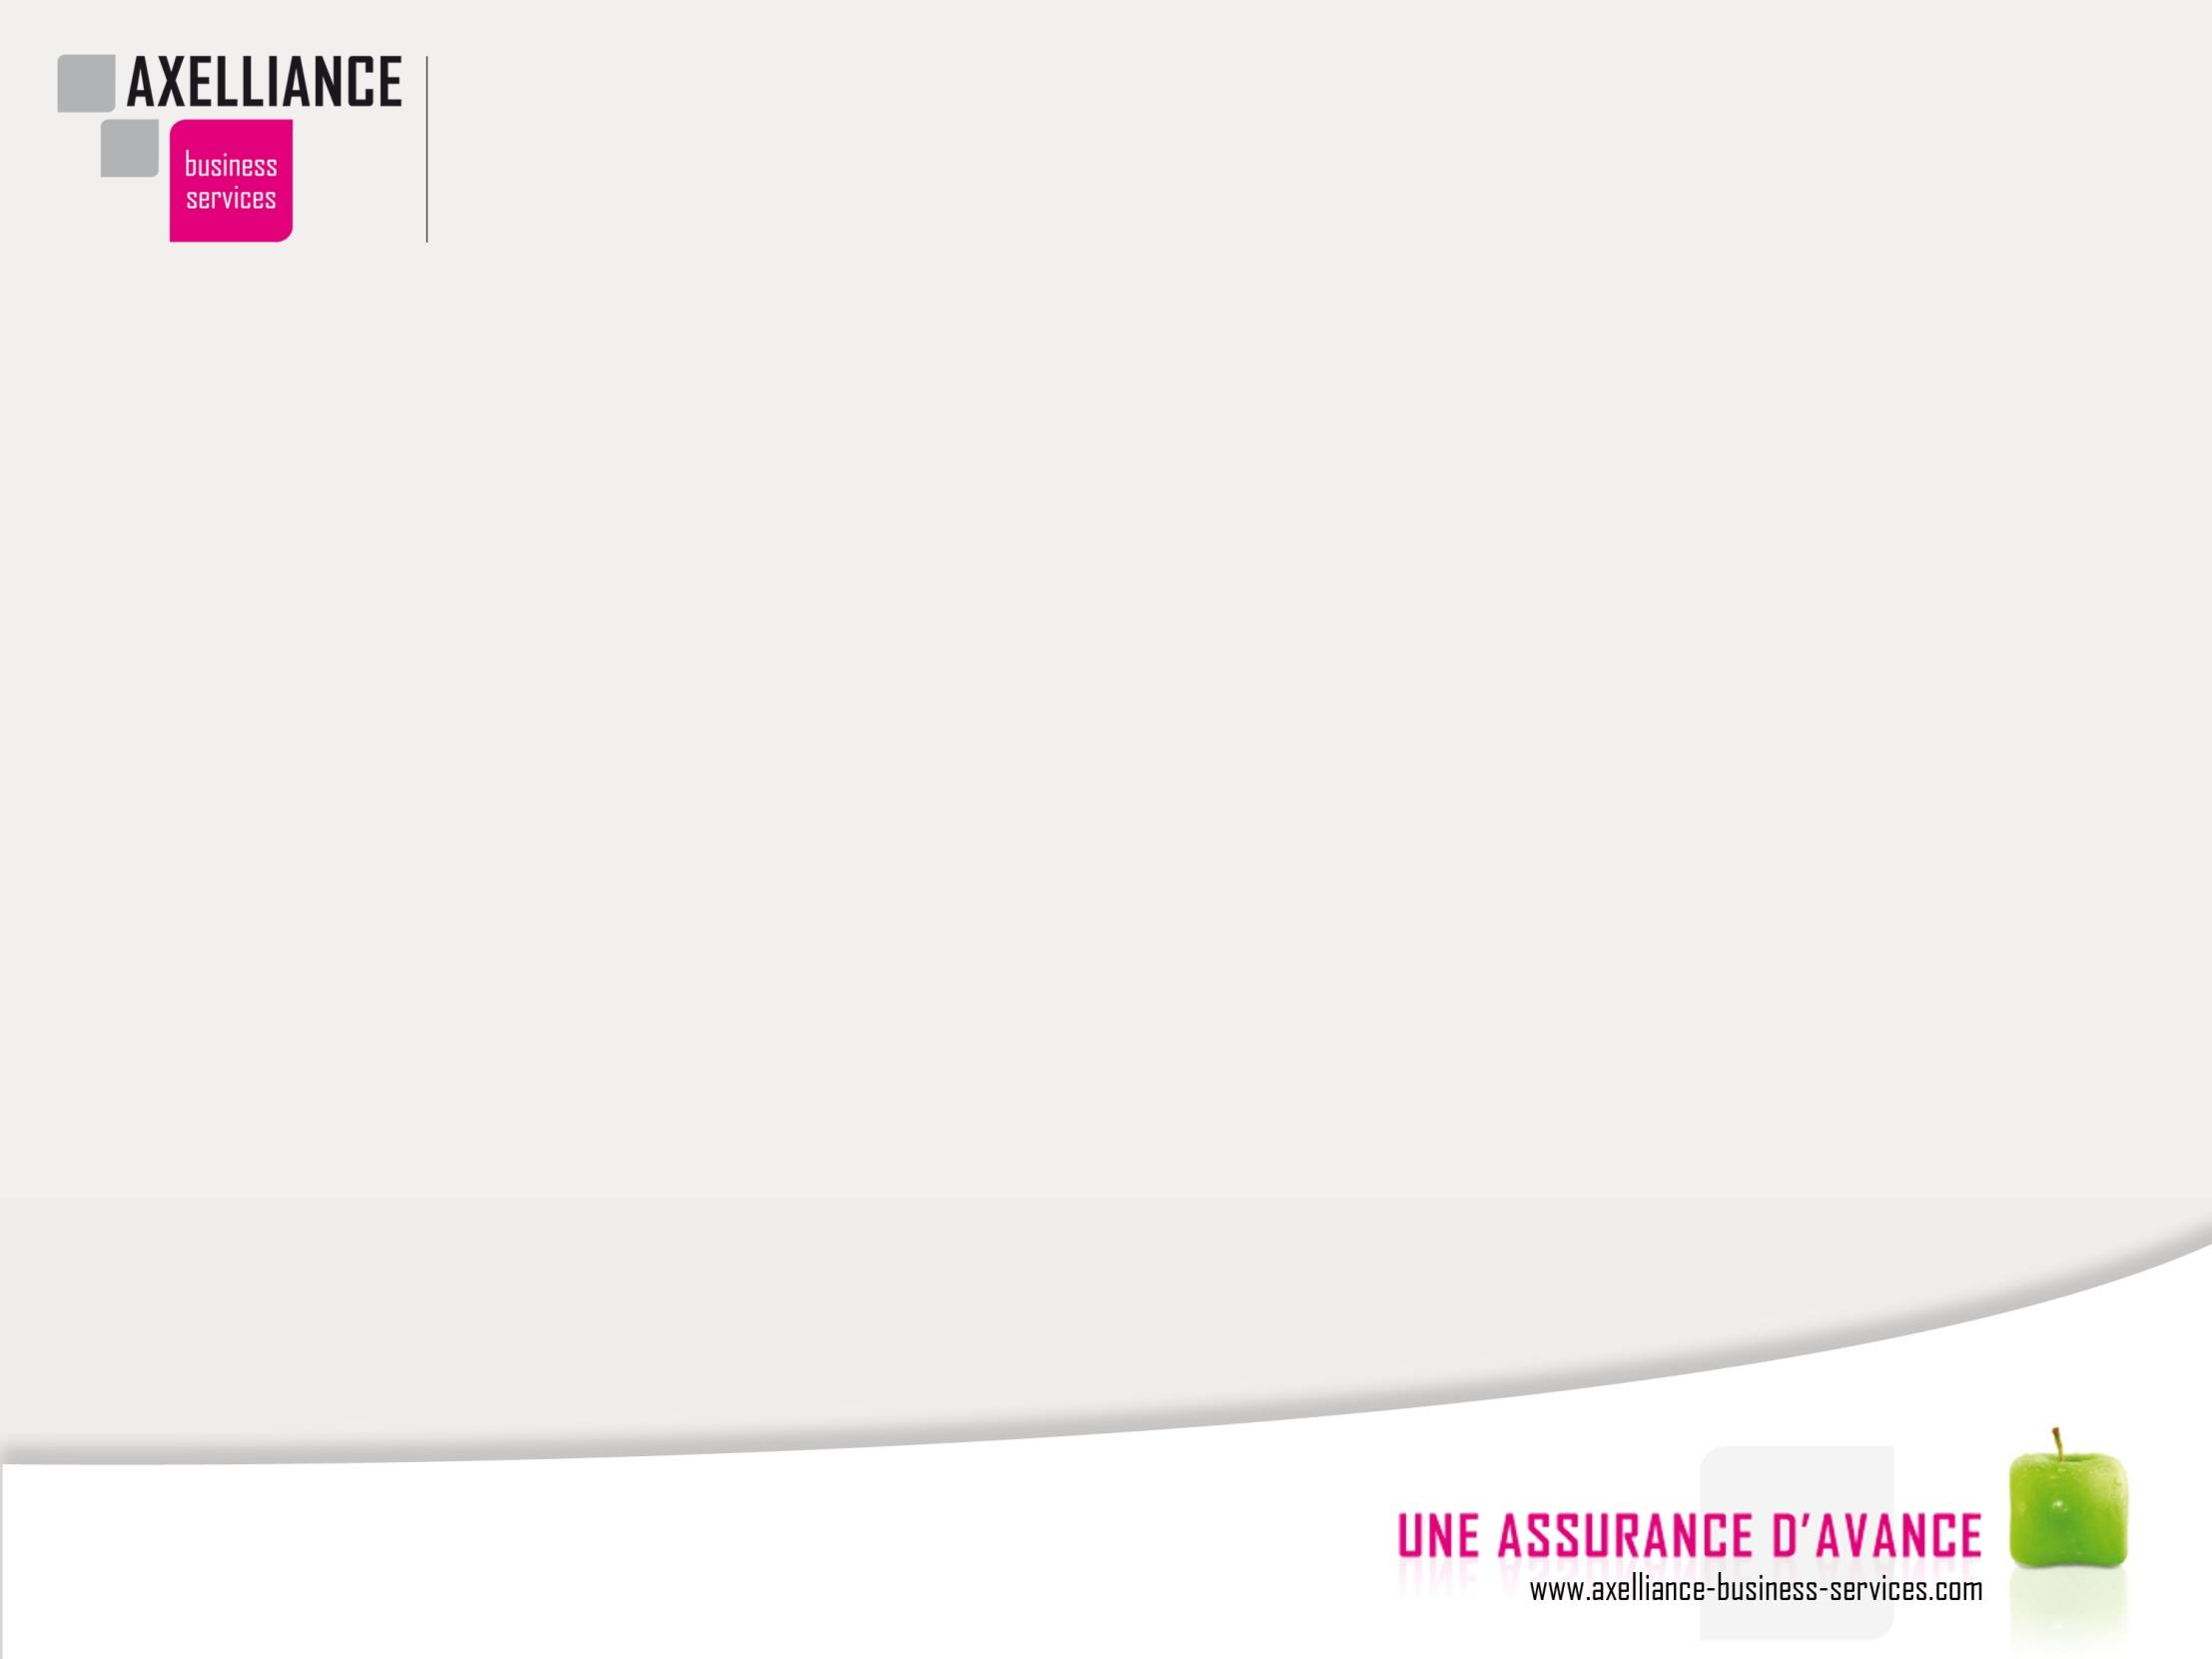 Cmment suscrire COMPLETER LE QUESTIONNAIRE dispnible sur le site d AXELLIANCE : http://axelliance-risk.